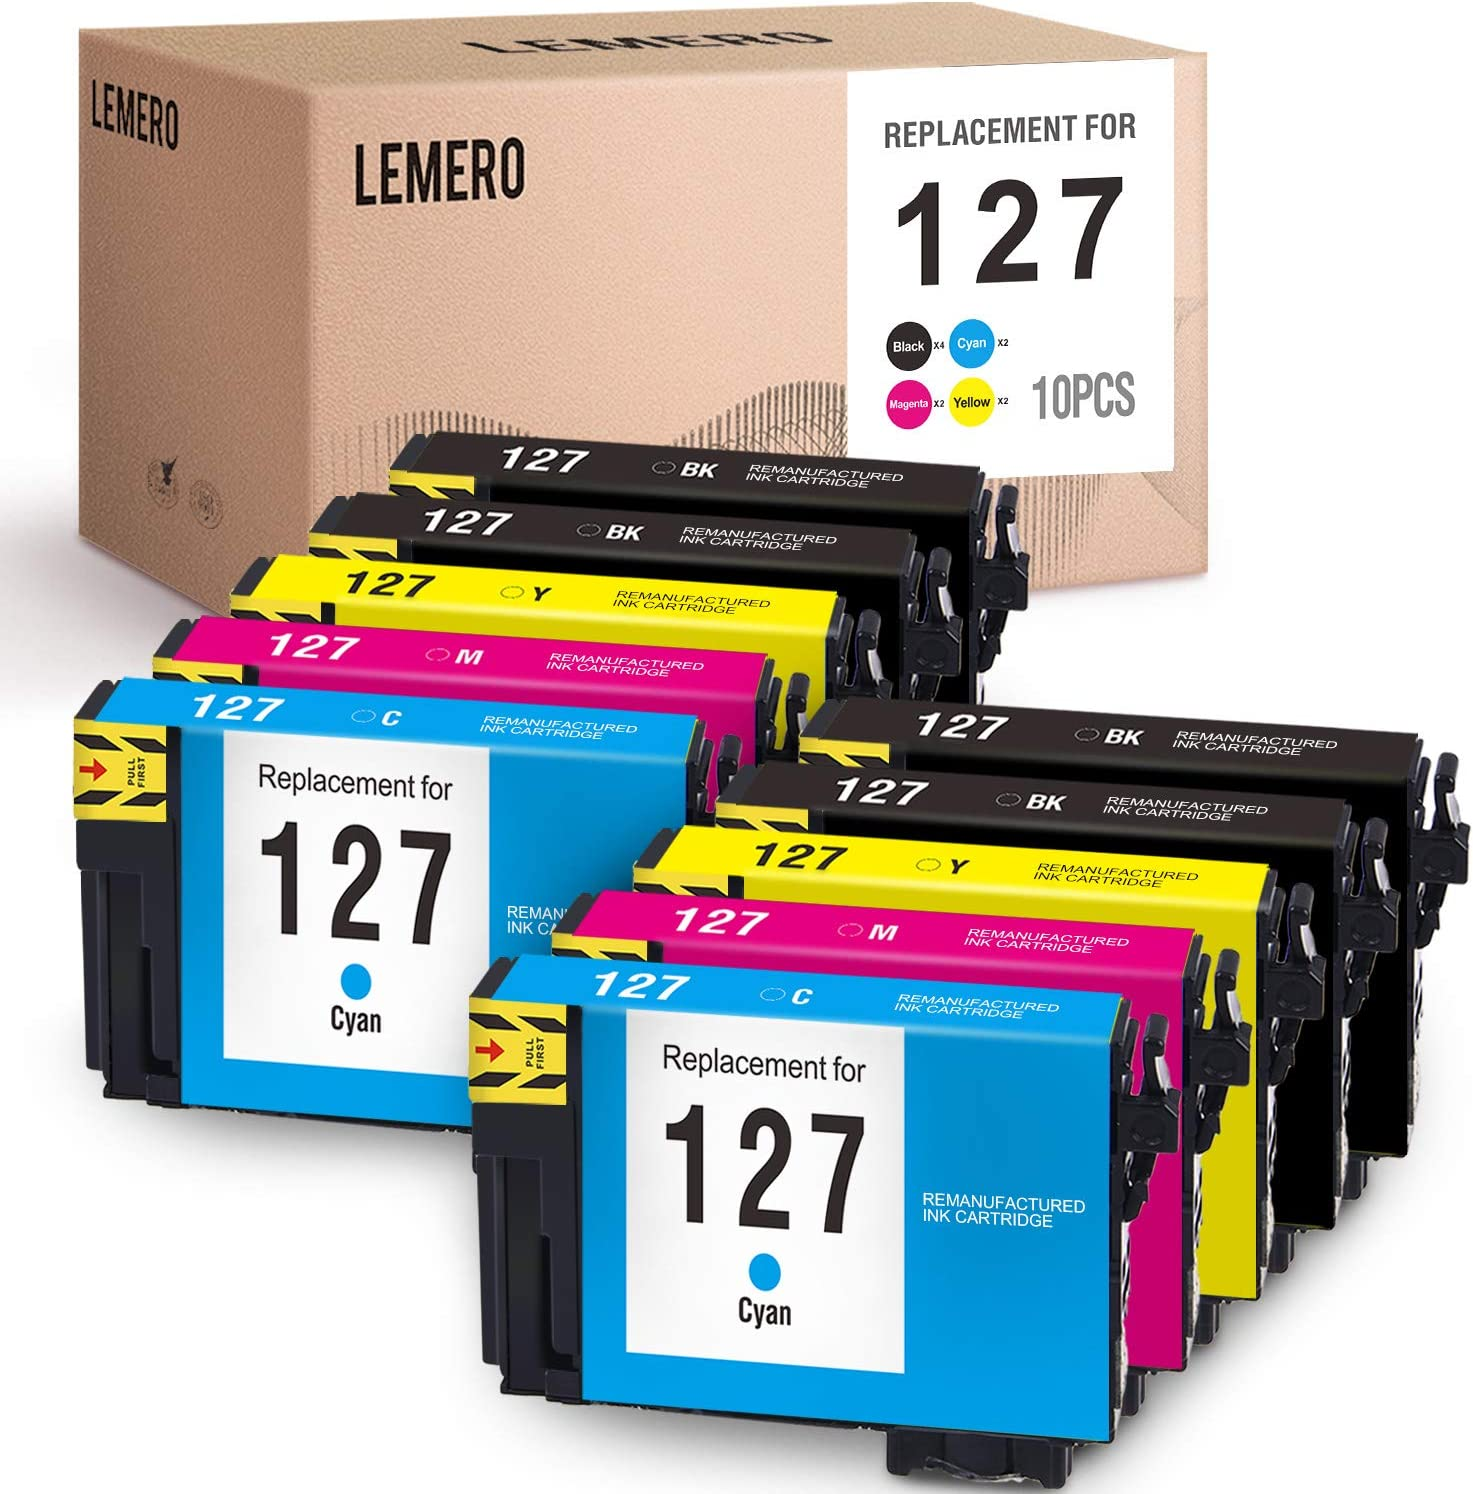 LEMERO Remanufactured for Epson 127 T127 Ink Cartridges - for Epson Workforce 545 845 630 645 840 633 635 WF-3520 WF-3540, 10 Pack